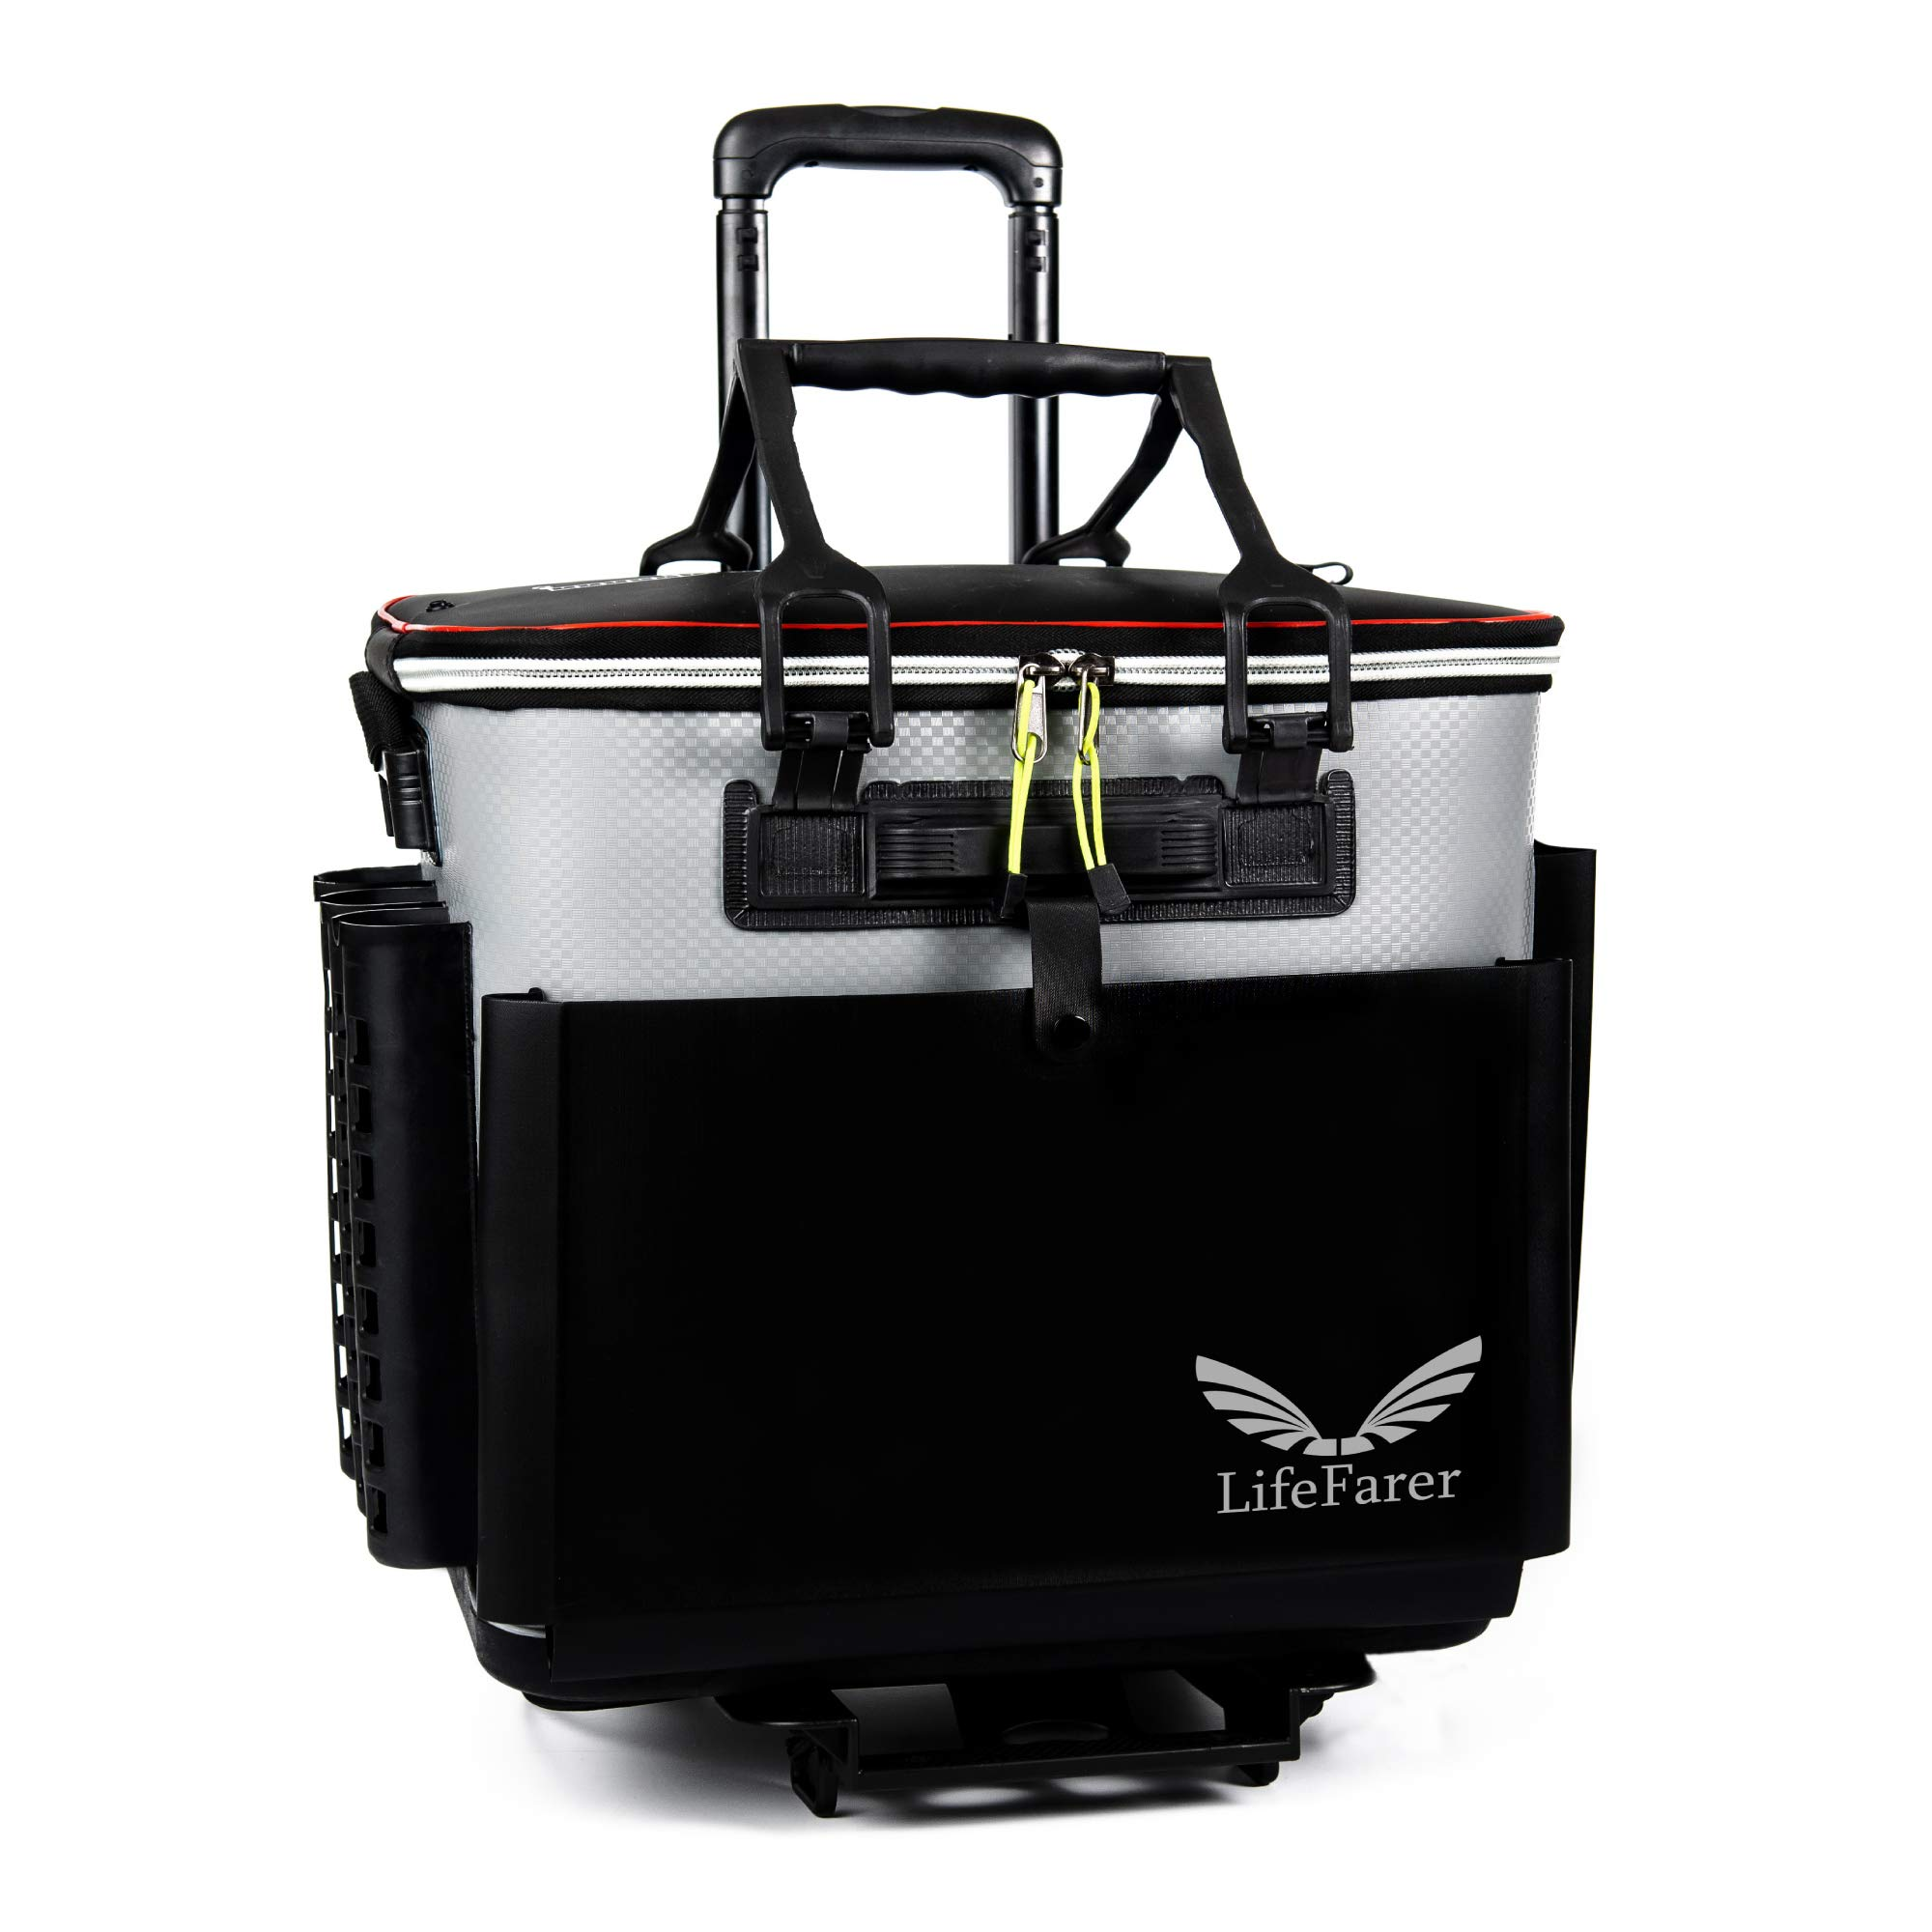 LifeFarer Waterproof Fishing Tackle Bag with Separated Inner Bag for Fish or Gear and Rod Holder - 3 Ways Carrying Including Roller Wheels Trolley - Saltwater Freshwater Outdoor Sports Tackling Game